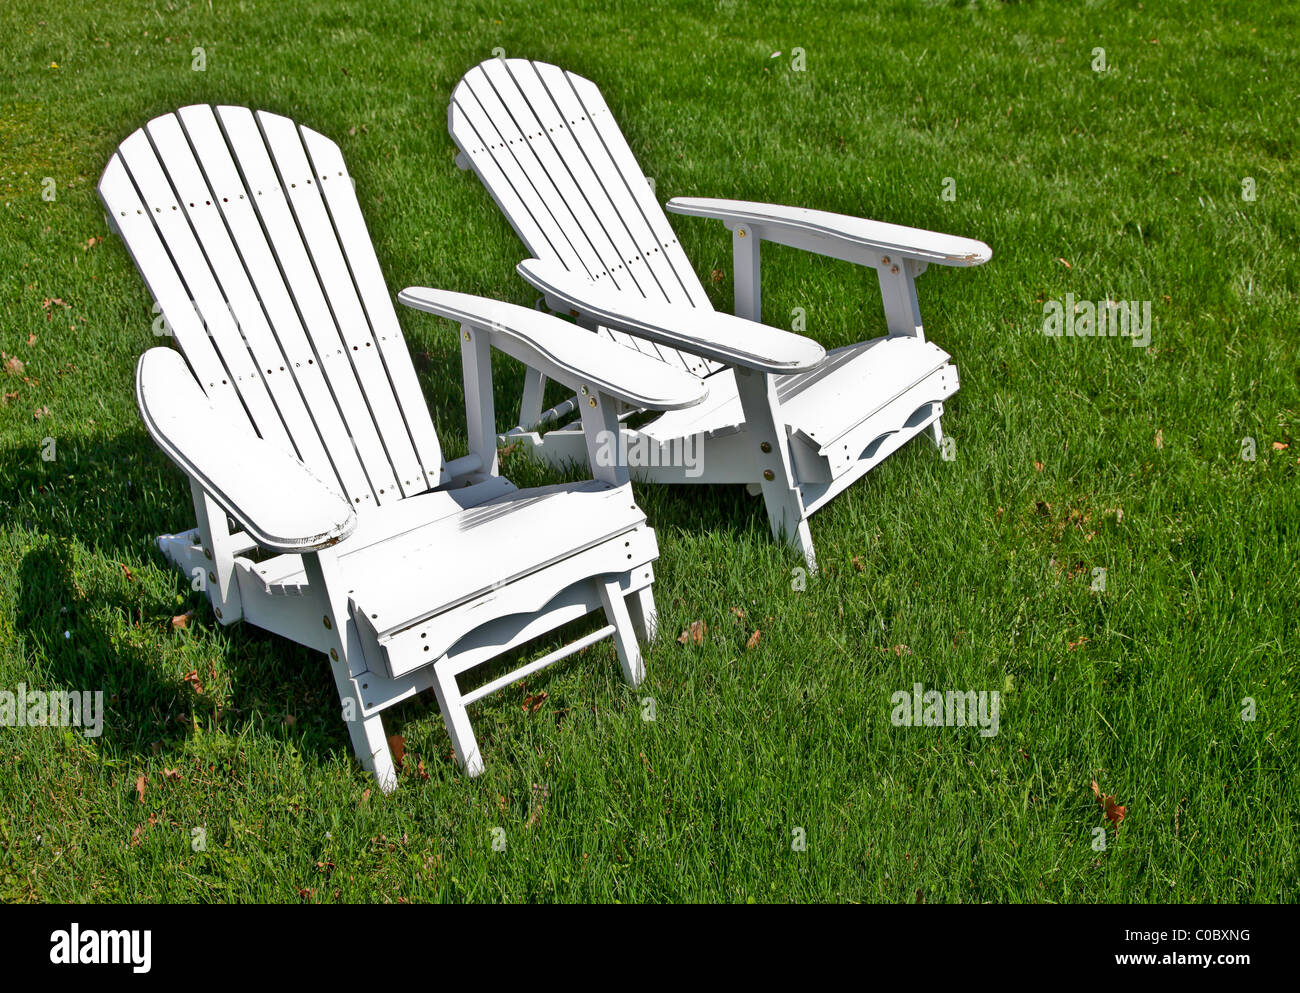 Two Adirondack Chairs On A Green Lawn